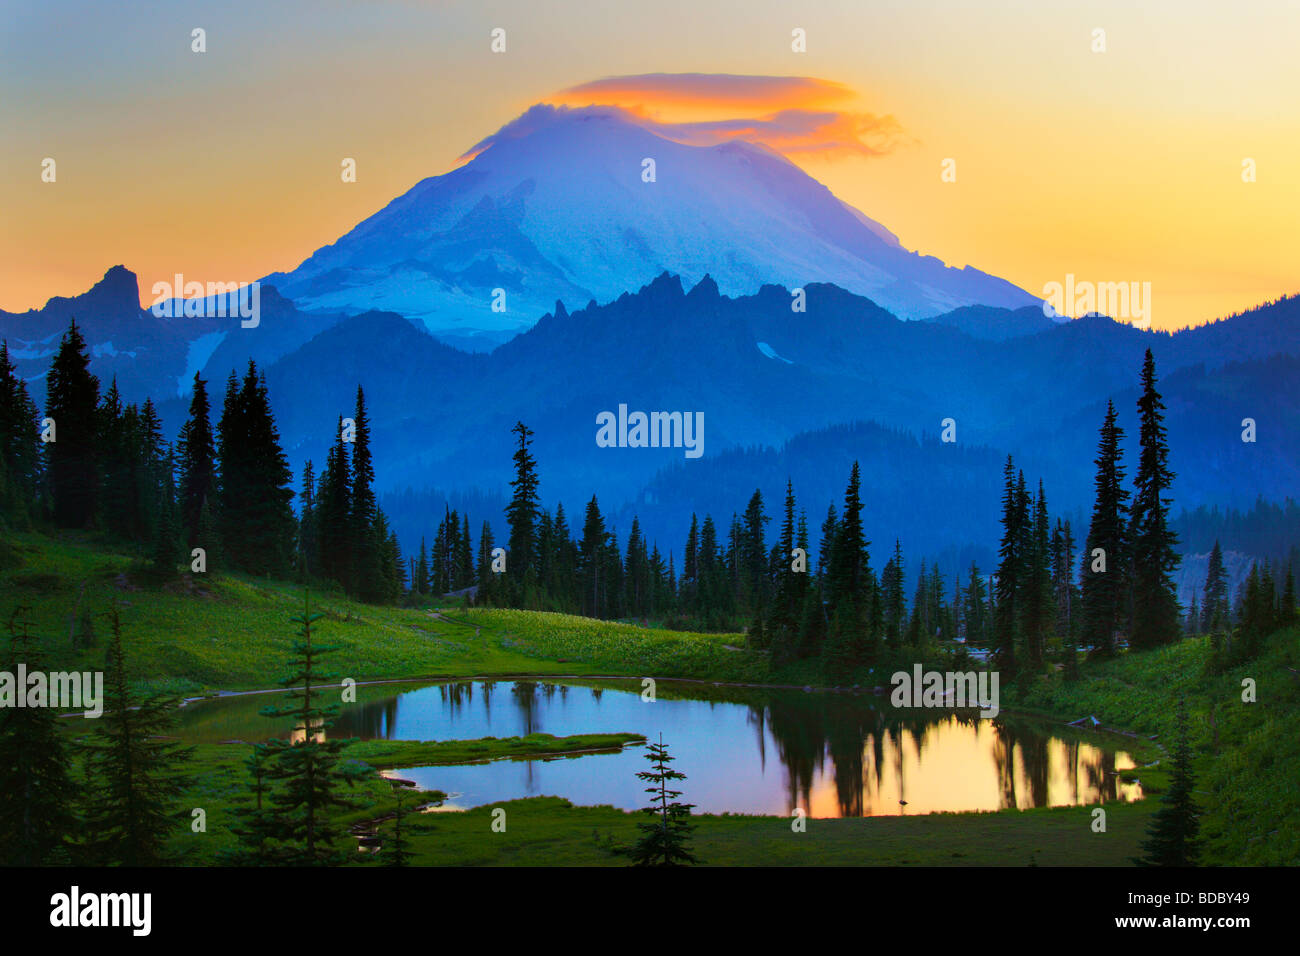 Lake immagini lake fotos stock alamy for Cabine vicino a mt ranier